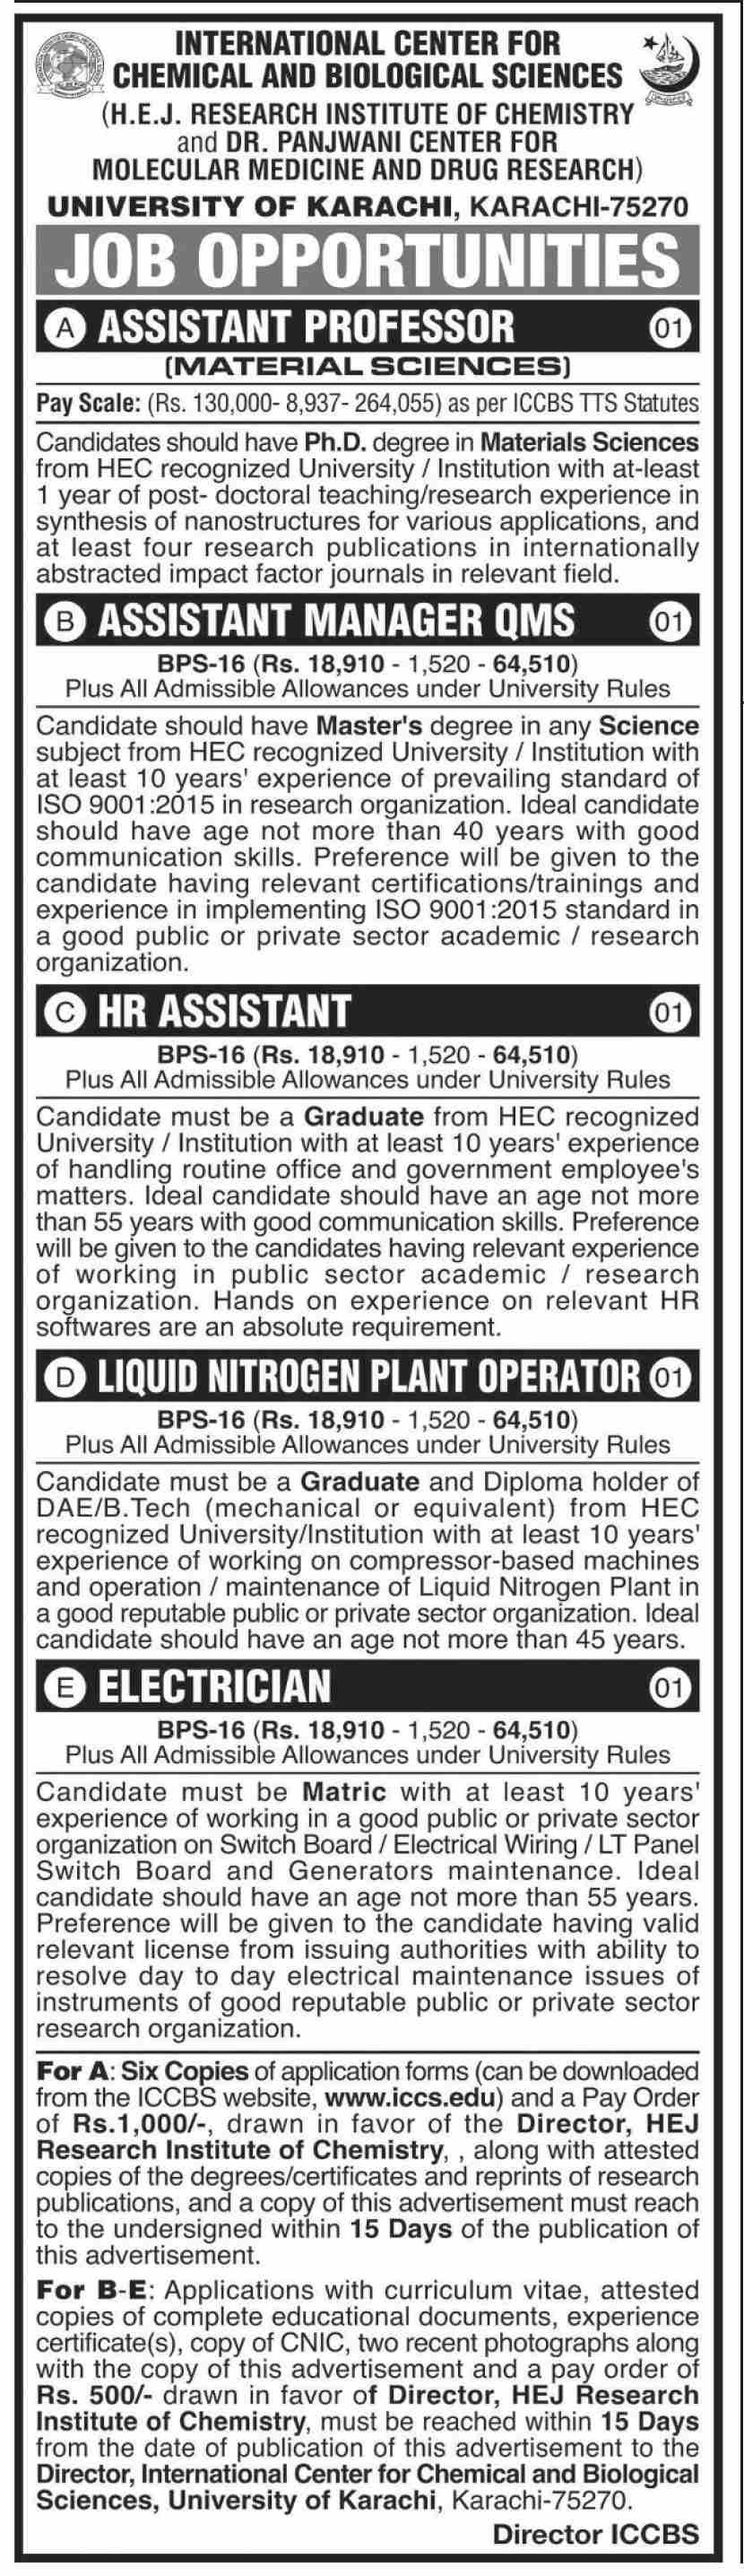 International Center For Chemical & Biological Sciences jobs newspaper ad for Liquid Mitrogen Plant Operator in Karachi on 2021-02-23